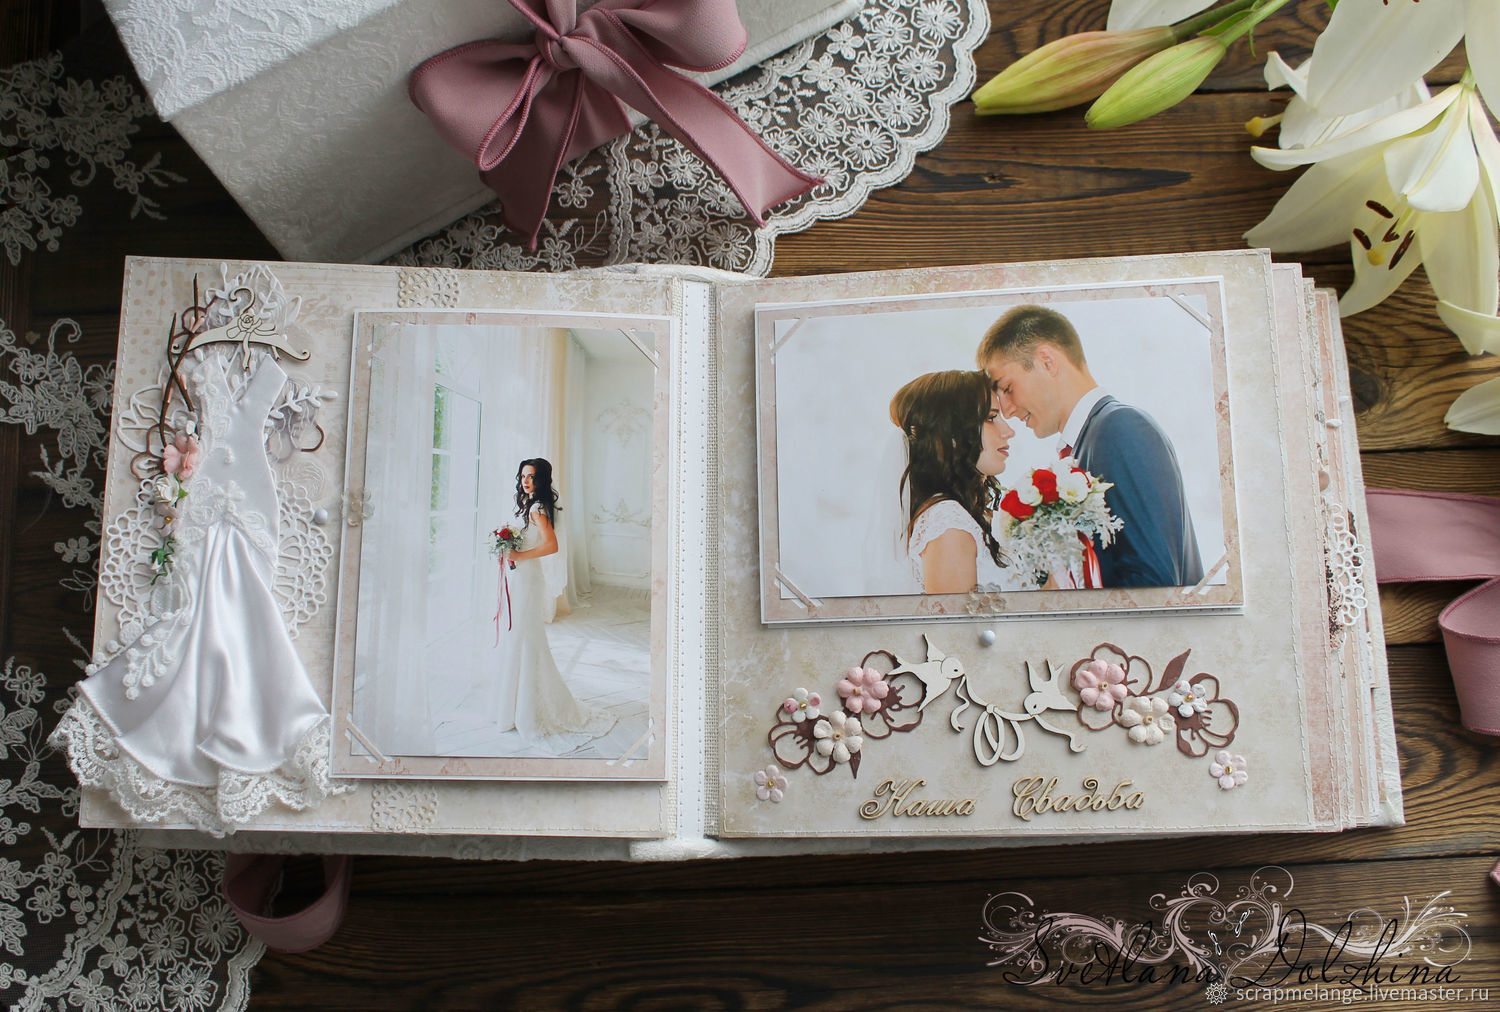 Wedding Album Spring Tenderness Gift White Pink Shop Online On